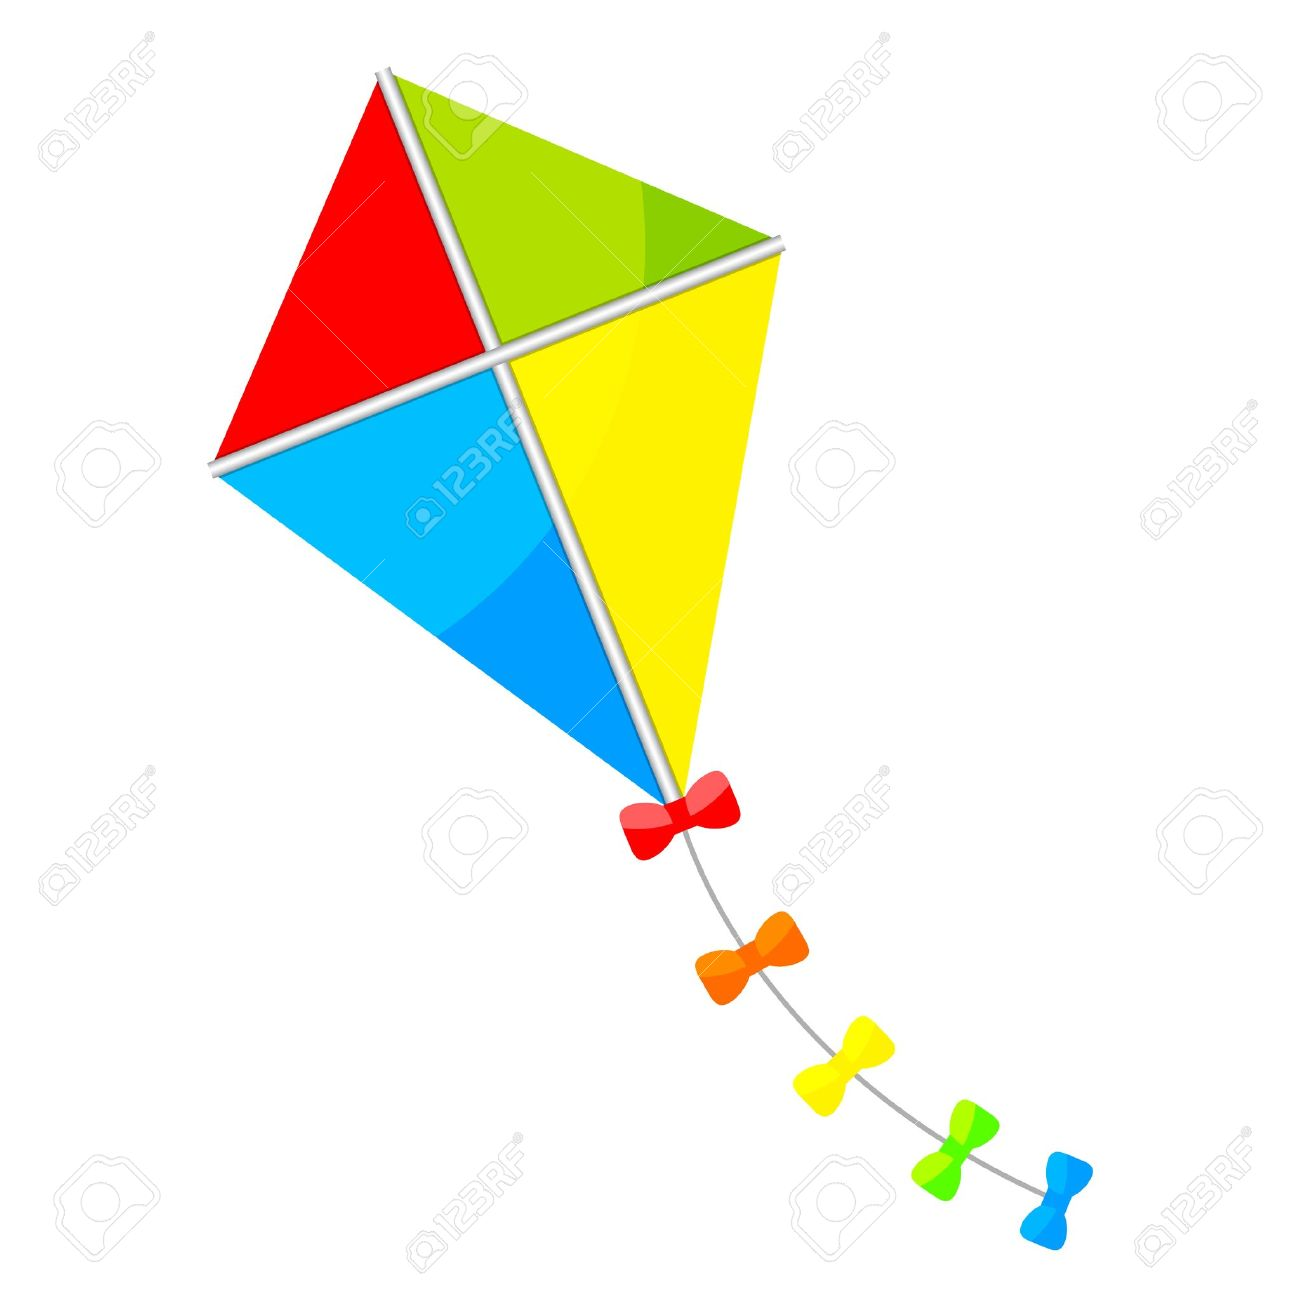 Illustration of colorful kite royalty free cliparts vectors and illustration of colorful kite stock vector 21132655 biocorpaavc